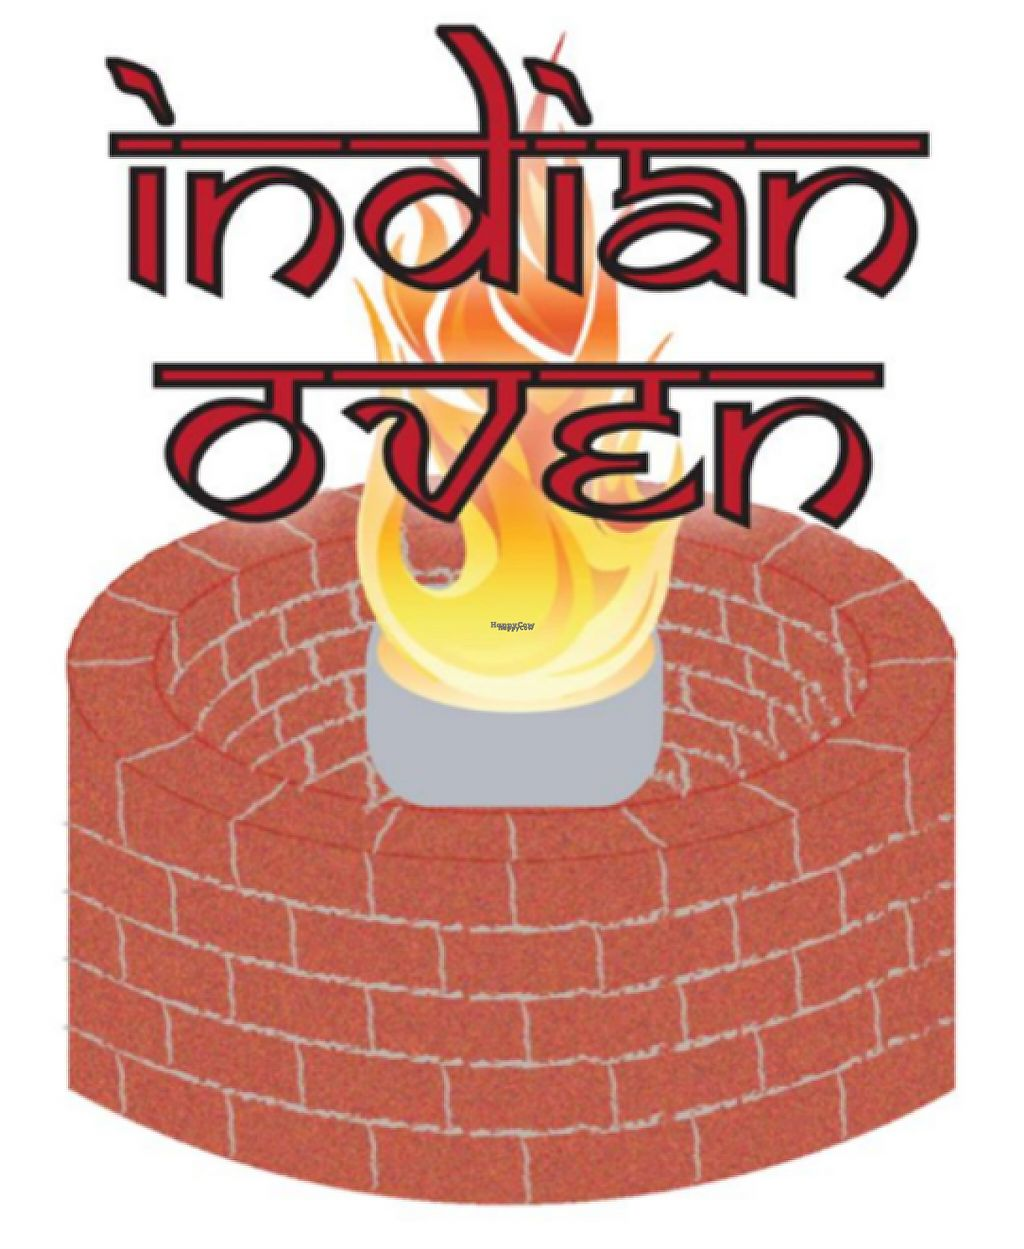 "Photo of Indian Oven  by <a href=""/members/profile/community"">community</a> <br/>Indian Oven <br/> March 14, 2017  - <a href='/contact/abuse/image/73776/236329'>Report</a>"